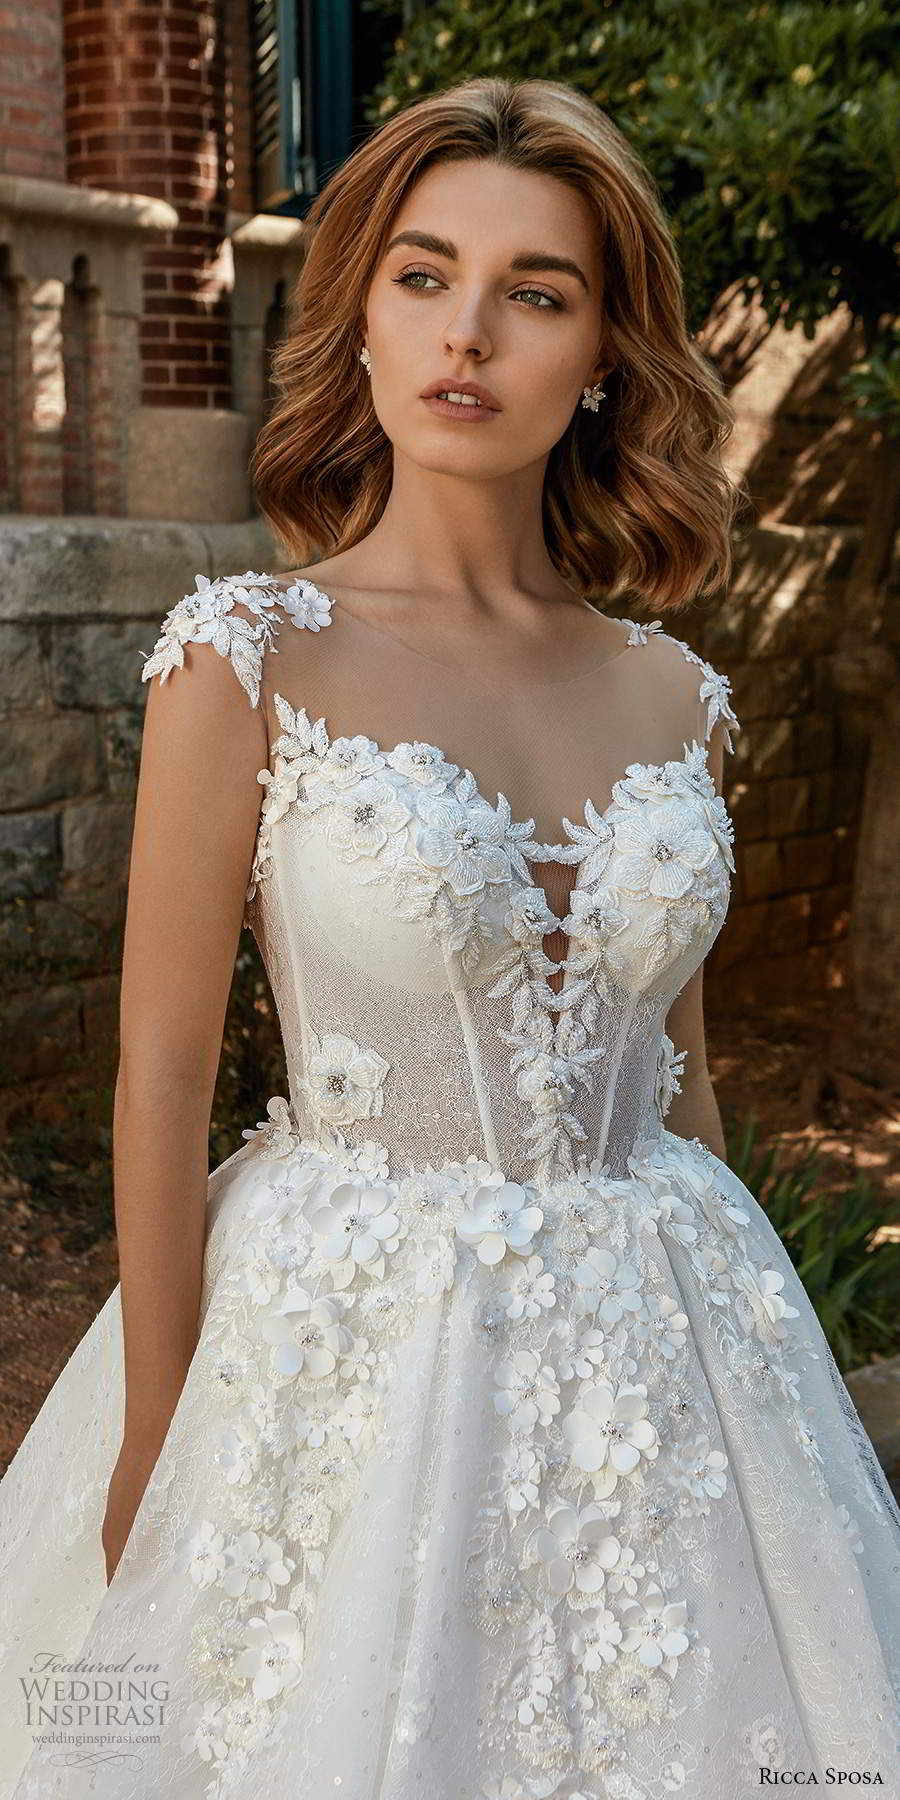 ricca sposa 2020 barcelona bridal illusion cap sleeves sweetheart neckline heavily embellished bodice lace romantic princess a line ball gown wedding dress chapel train (13) zv